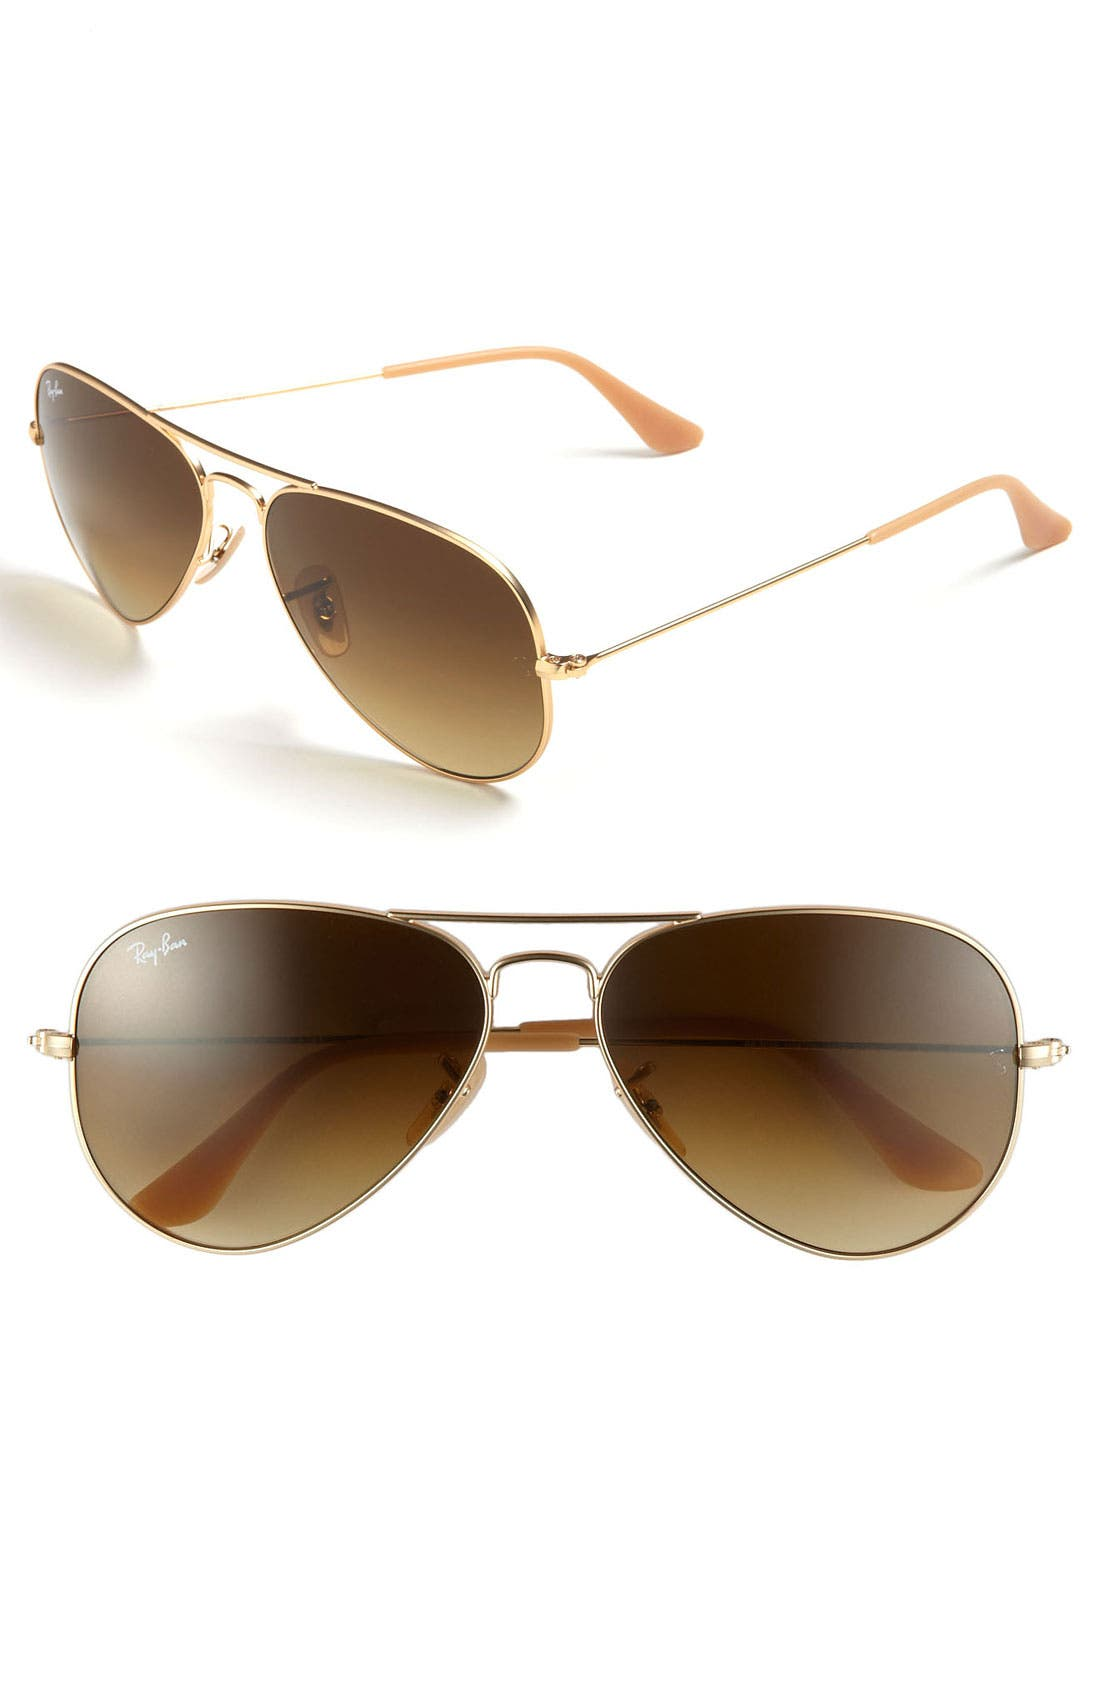 Standard Original 58mm Aviator Sunglasses,                         Main,                         color, BROWN